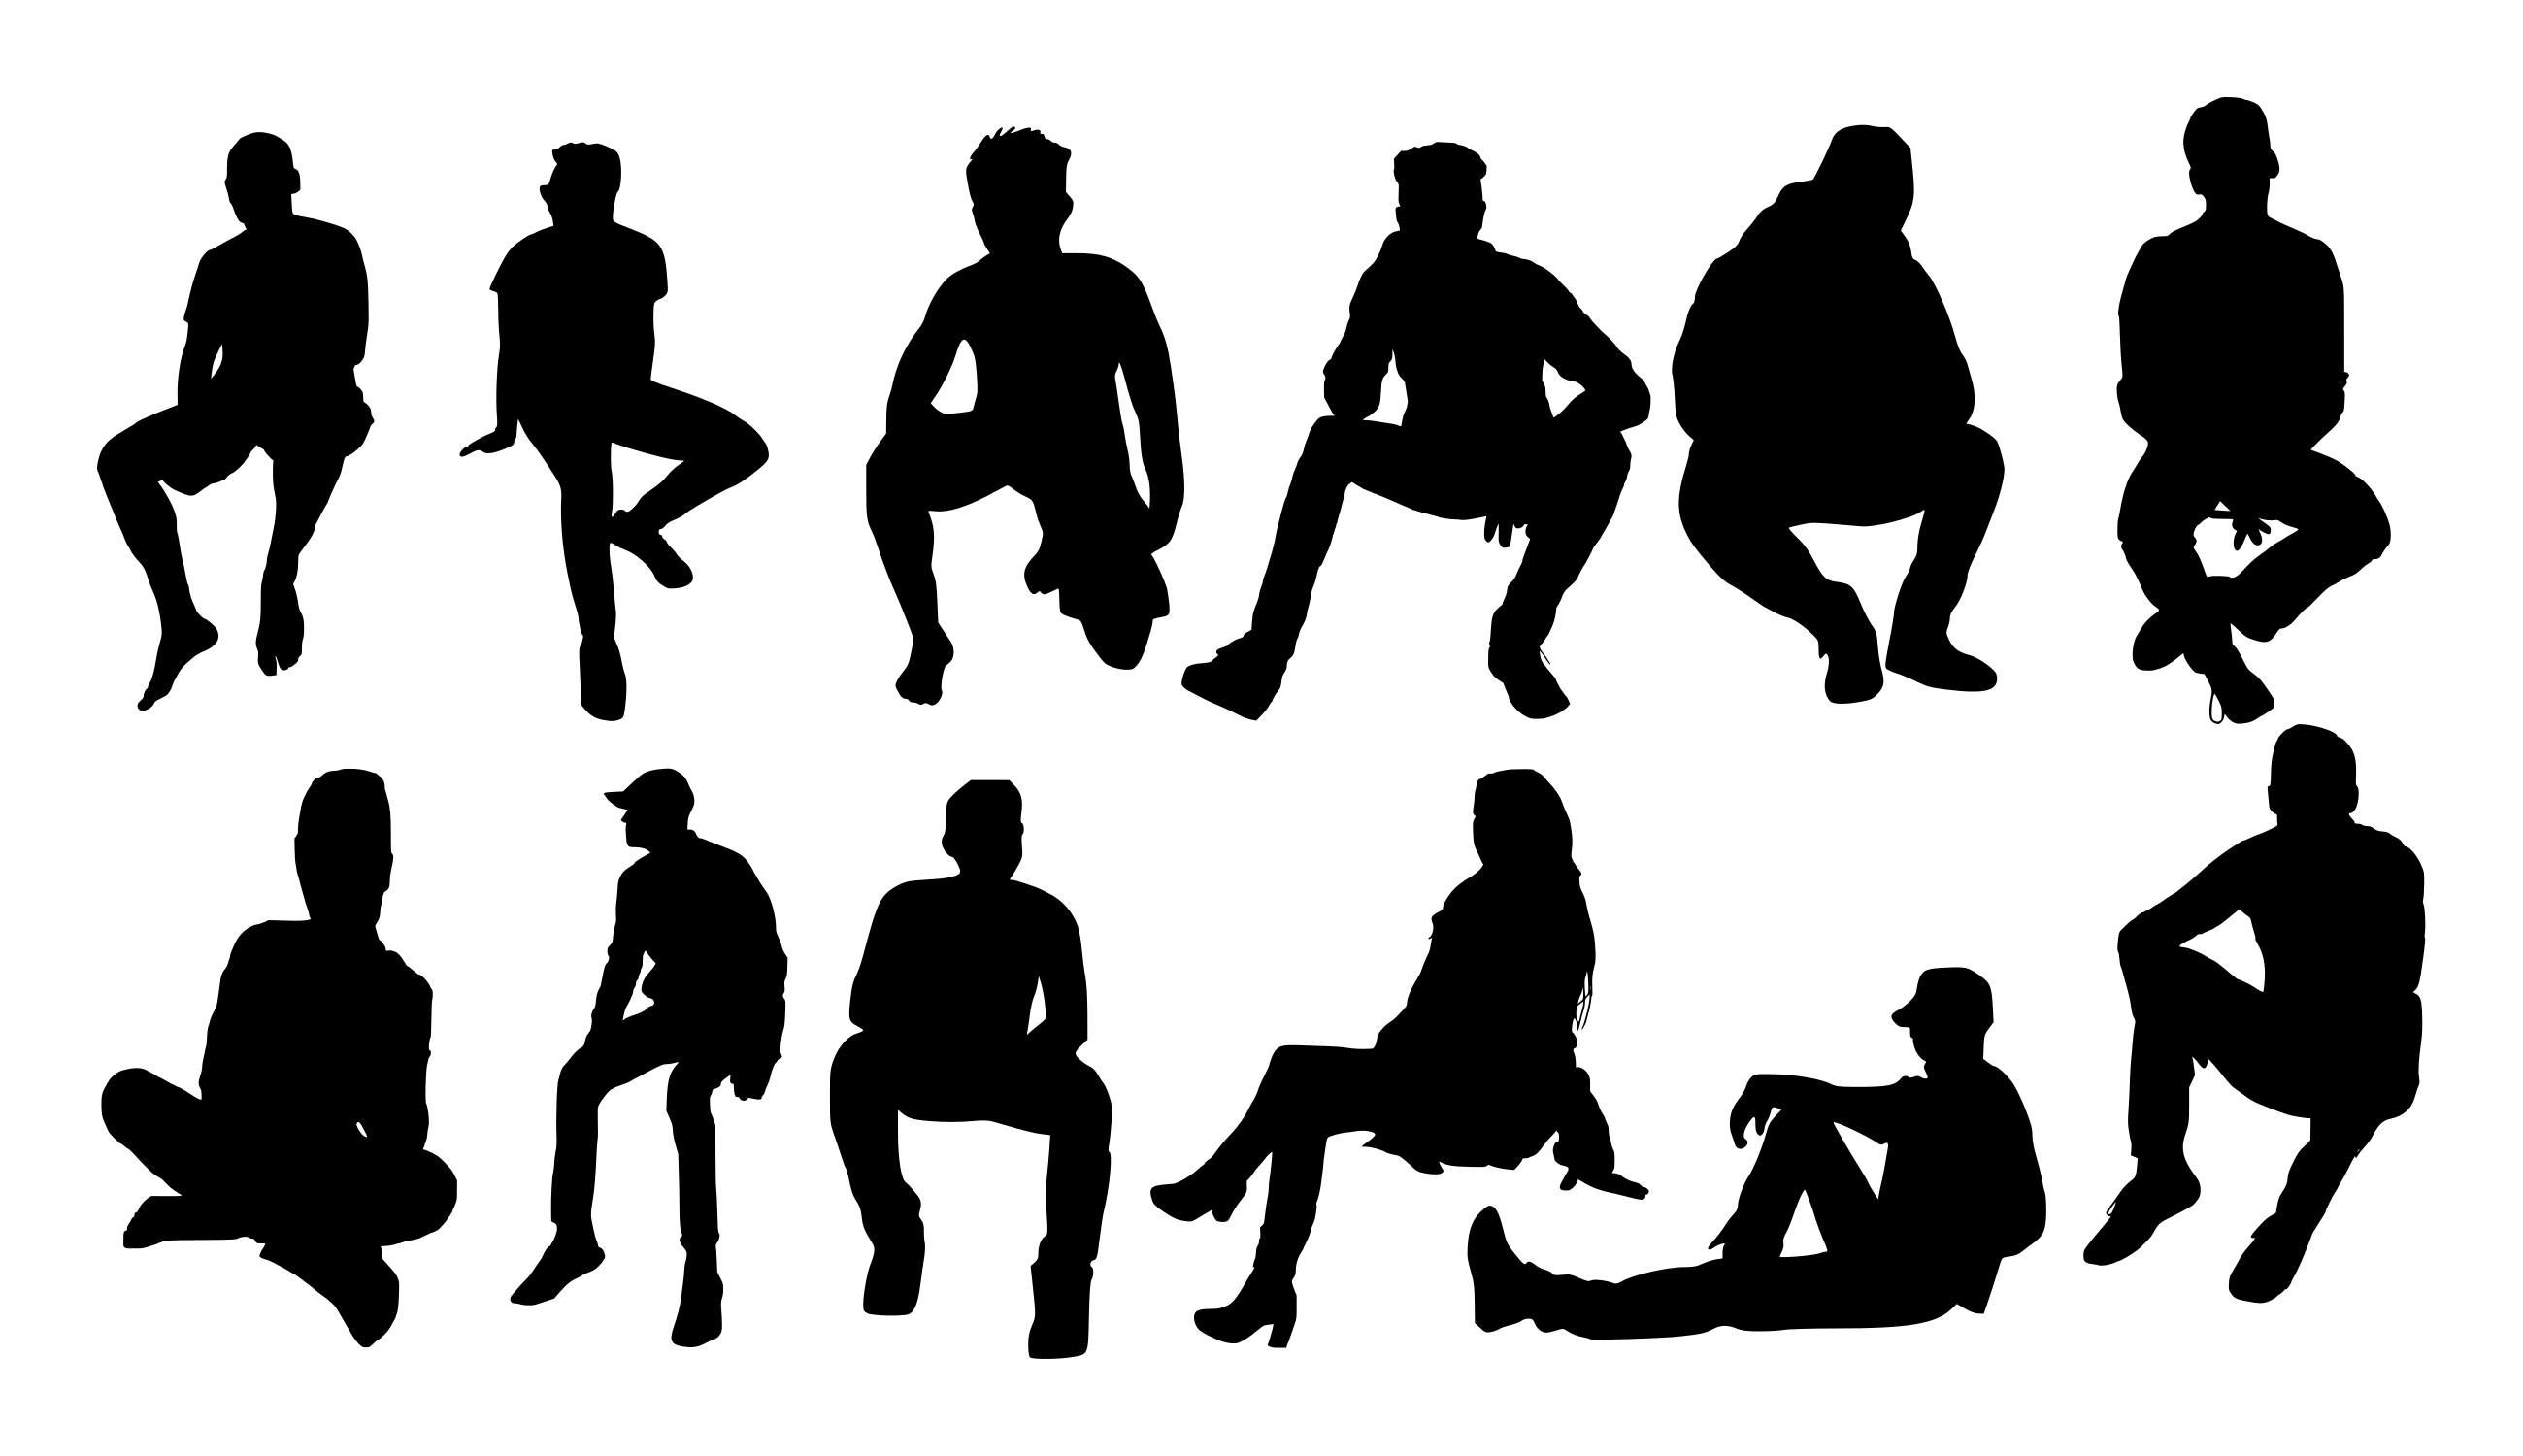 silhouette of person sitting alone person png free alone personpng transparent of silhouette sitting person